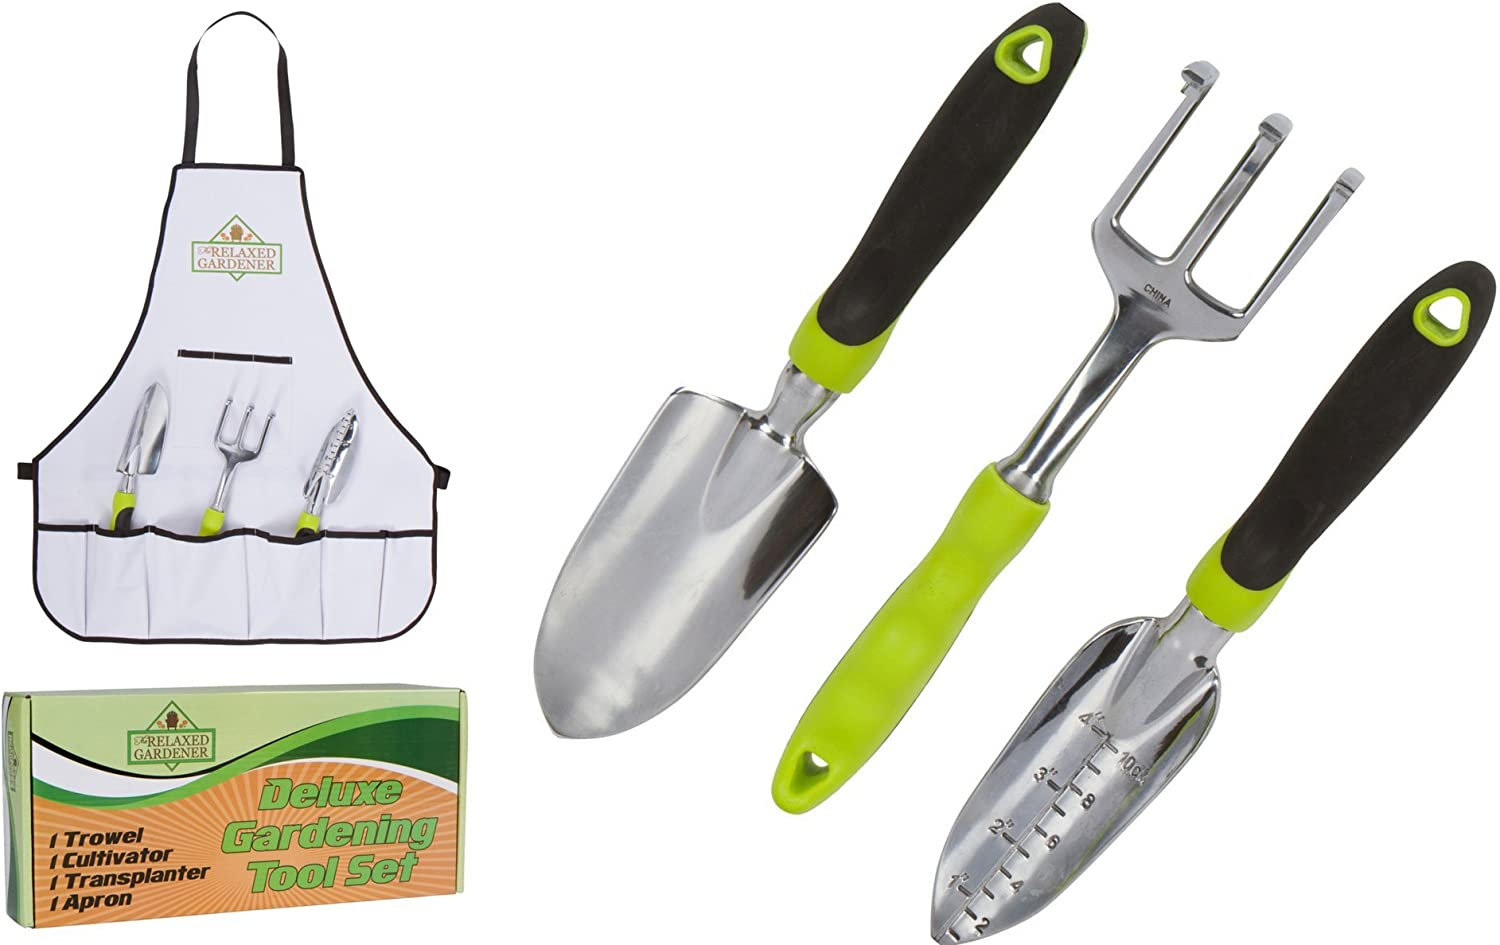 The Relaxed Gardener Garden Tool Set – 3 Heavy Duty Gardening Hand Tools – Trowel, Cultivator, and Transplanter with Bonus Apron – Rust-Proof Gardening Tools Kit Gift for Men and Women